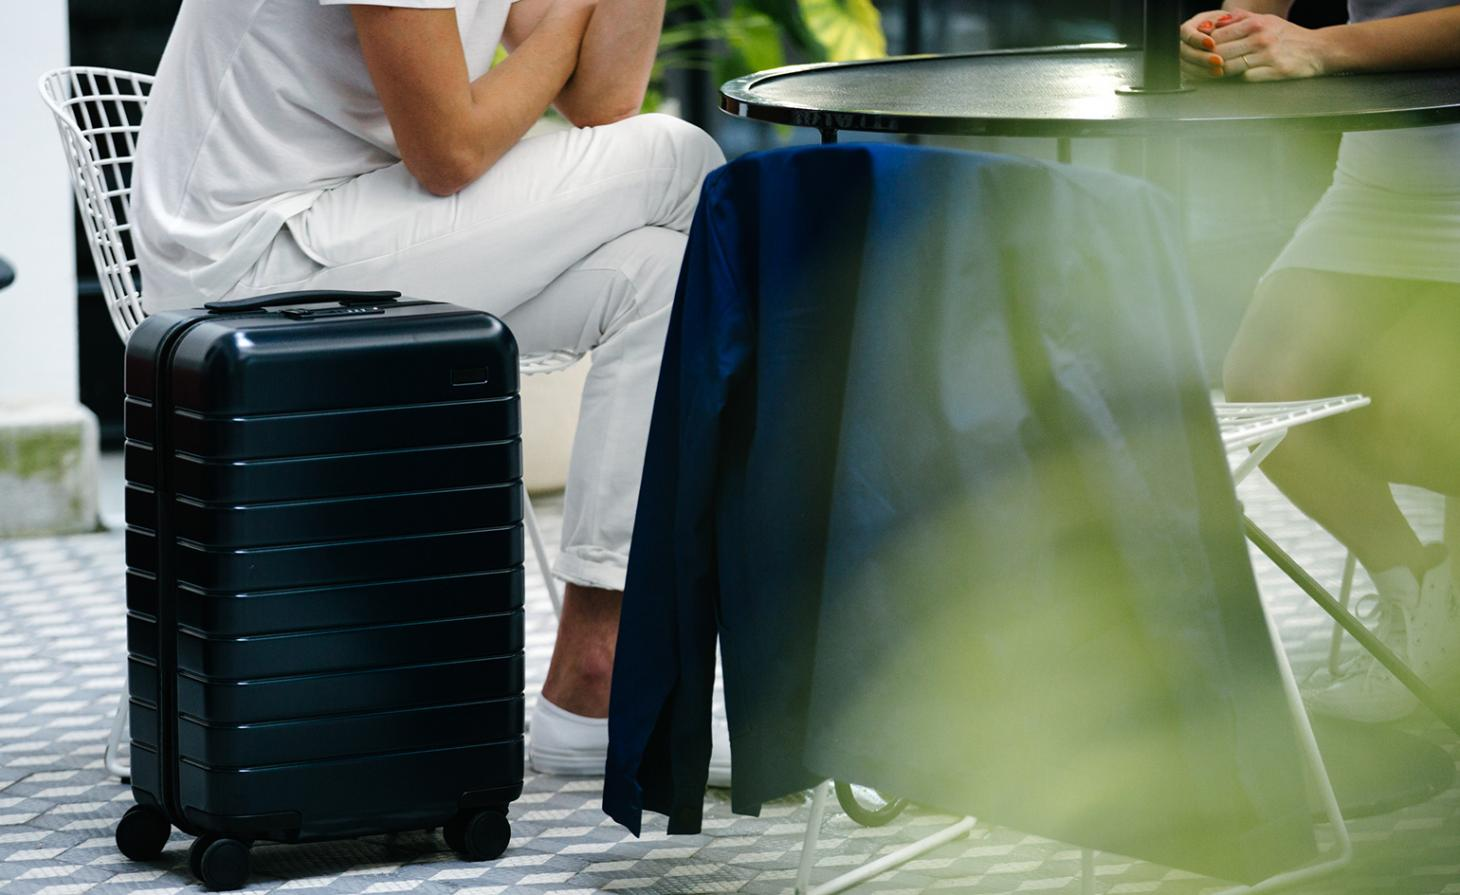 On a roll: Away is the new start-up putting a design spin on luggage